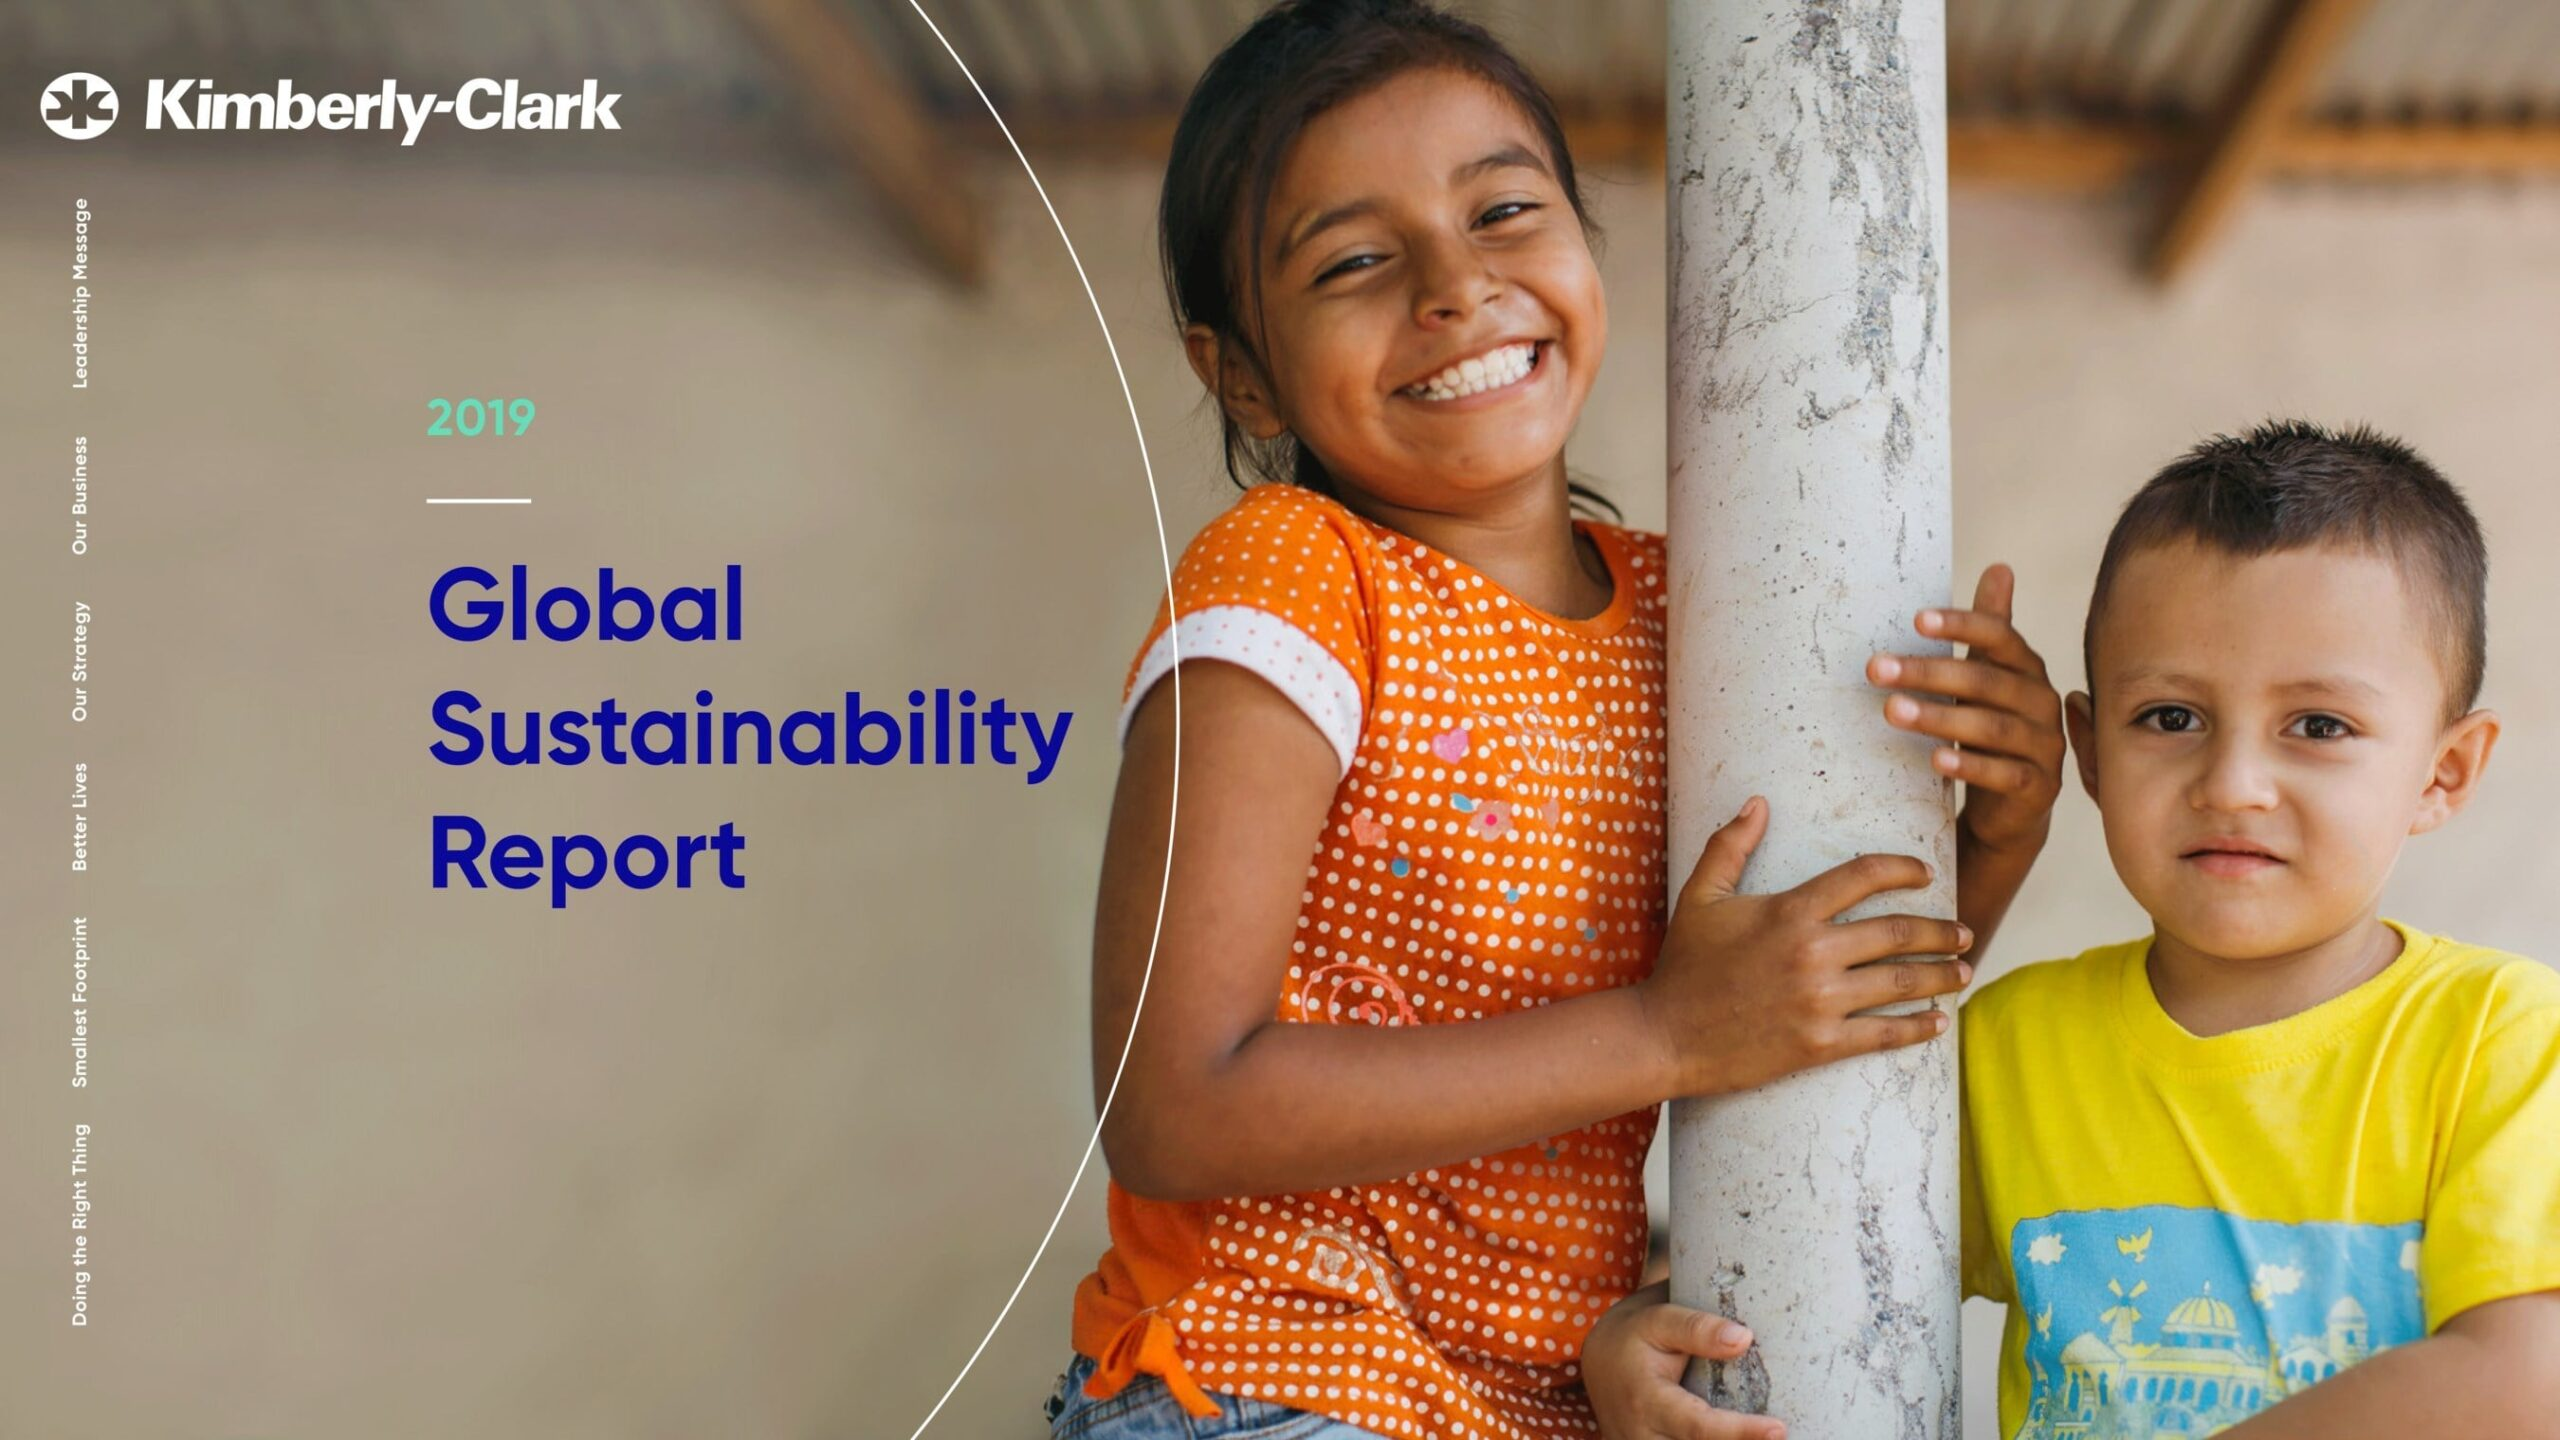 , Kimberly-Clark announces sustainability strategy for the next decade